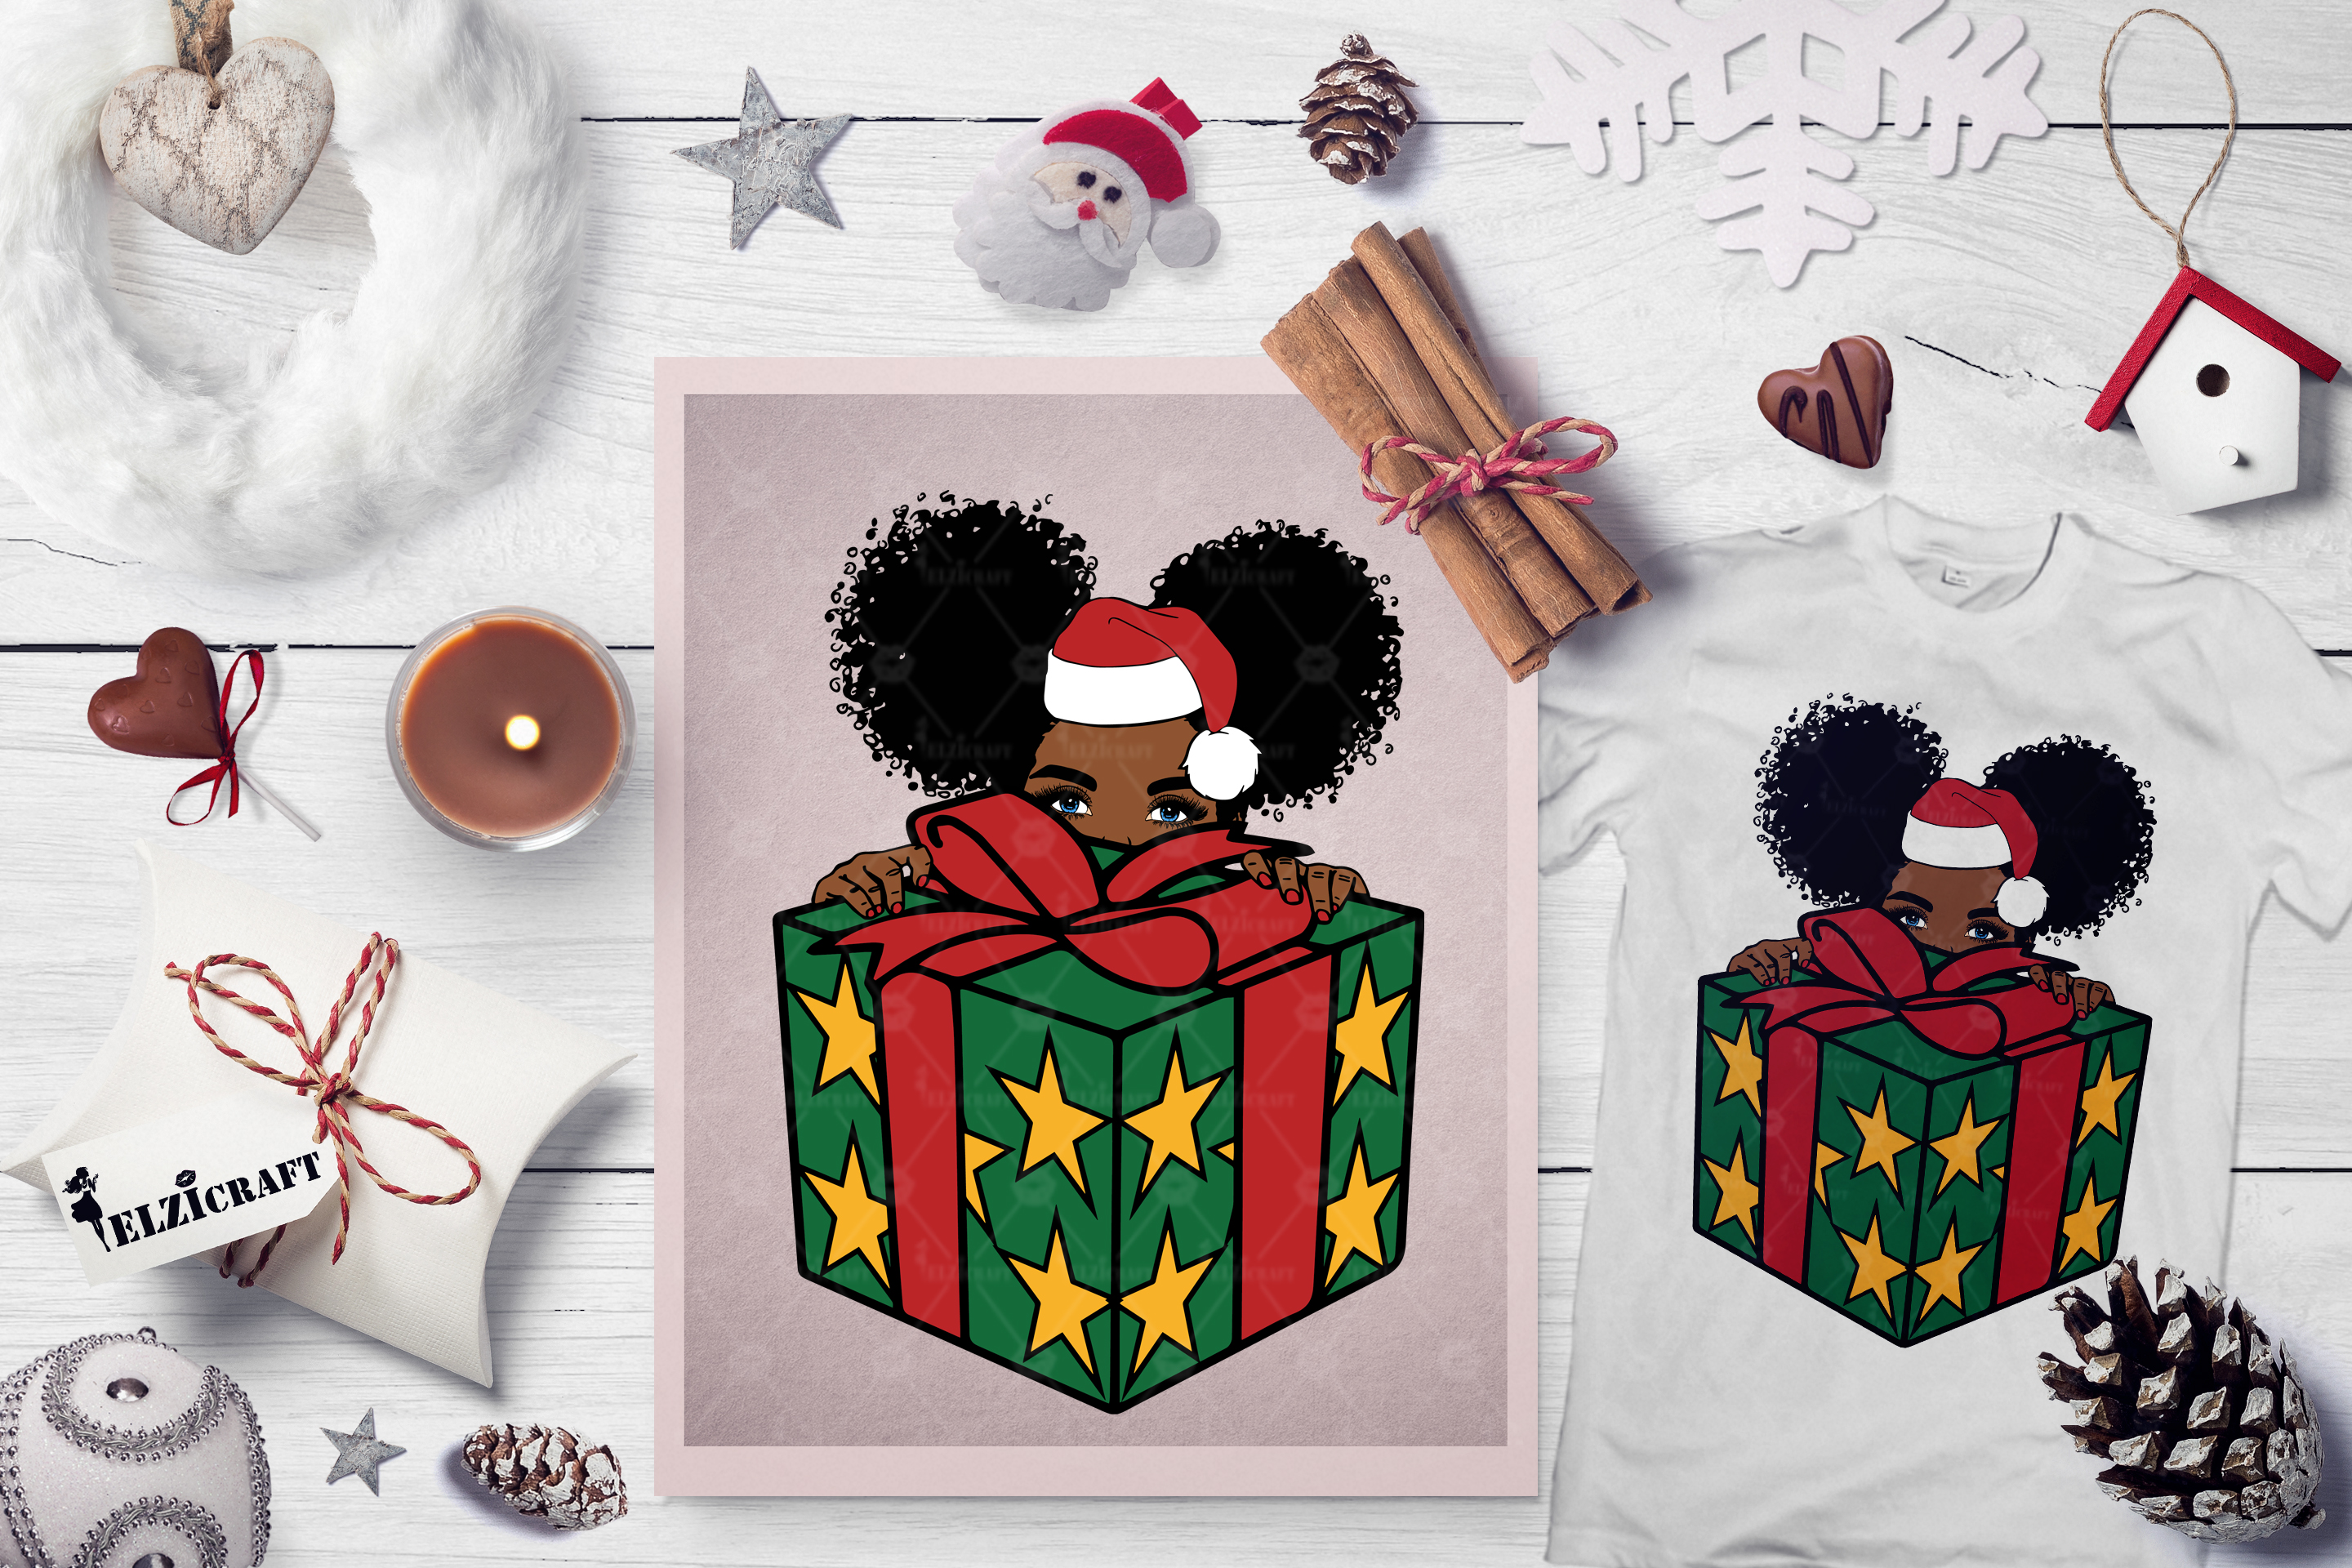 Download Free Peek A Boo Peeking Afro Girl Present Graphic By Elzicraft for Cricut Explore, Silhouette and other cutting machines.